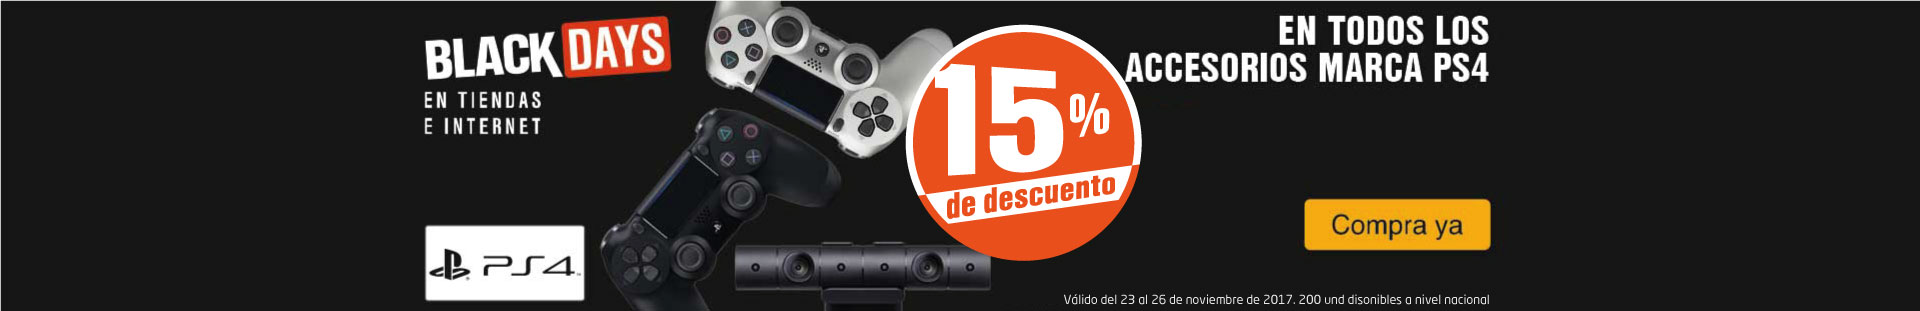 CAT-AK-KT-14-videojuegos-laccesoriosps4-cat-nov23-25